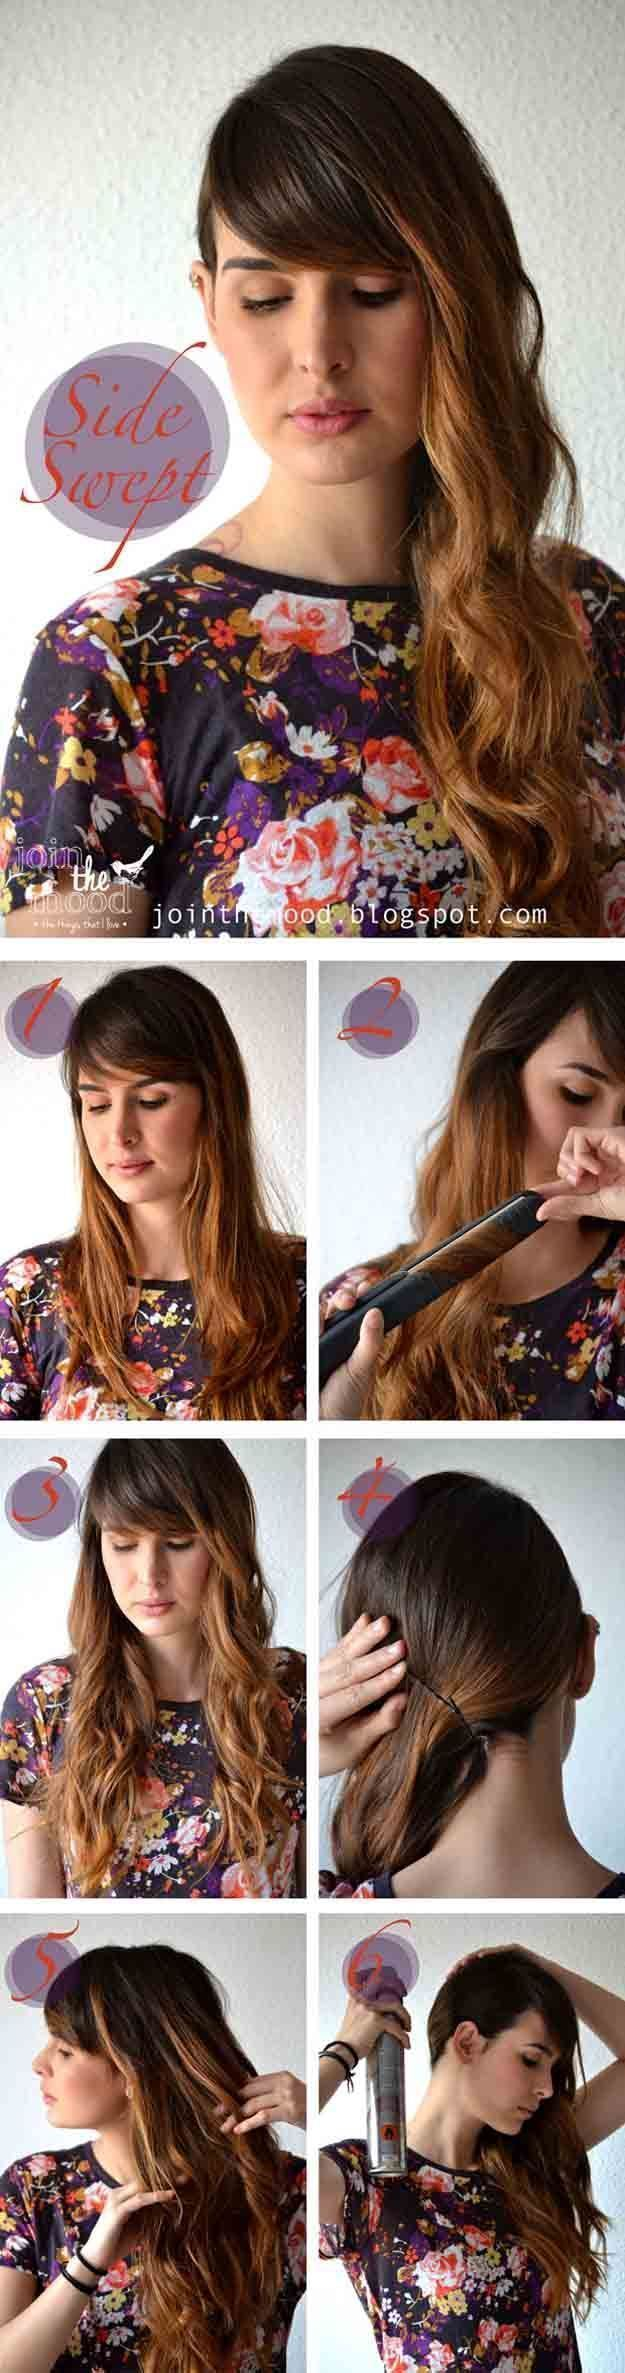 Fast and easy hairstyles for smooth hair swept sideways Popular haircuts and … #beloved #simple #styles # swept #smooth #fast #sided – #popular #simple #s hairstyles #for # swept #smooth #hair #haircuts #fast #fatly #and – #popular #simple # hairstyles #for # swept #smooth #hair #haircuts #fast #fatly #and – #popular #simple #corsals # for # swept #smooth #hair #haircuts #fast #fatly #and – http: // /wolfpack-toptrendspint.blackjumpsuitoutfit.tk/